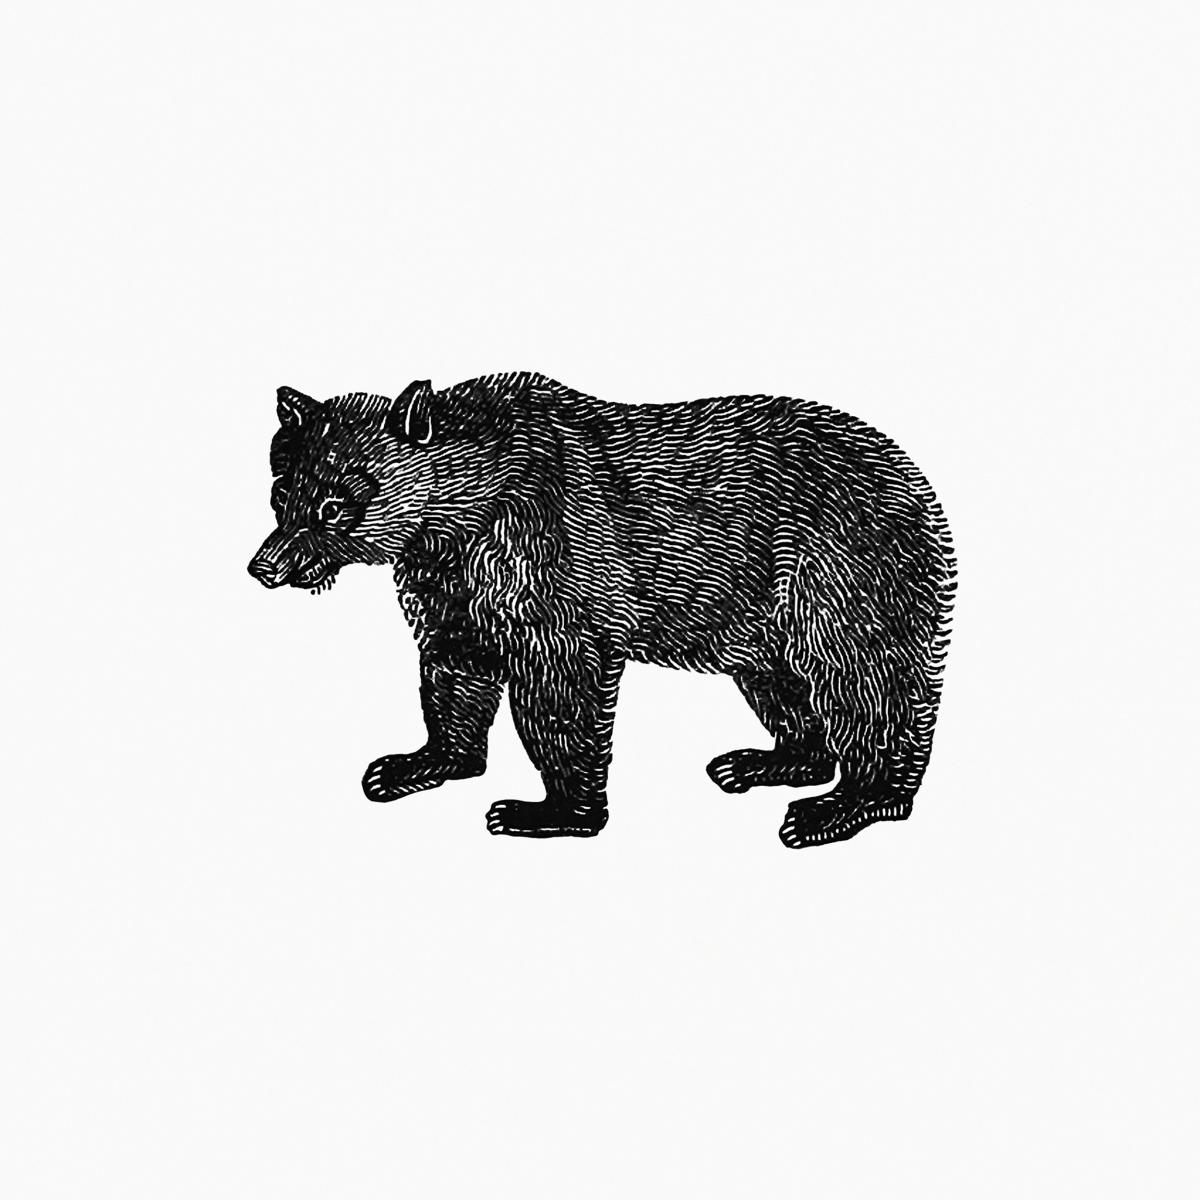 Vintage European style bear engraving from The Polar Regions Of The Western Continent Explored; Embracing A Geographical Account of Iceland, Greenland, The Islands of The Frozen Sea, and The Northern Parts of The American Continent by William Joseph Snell